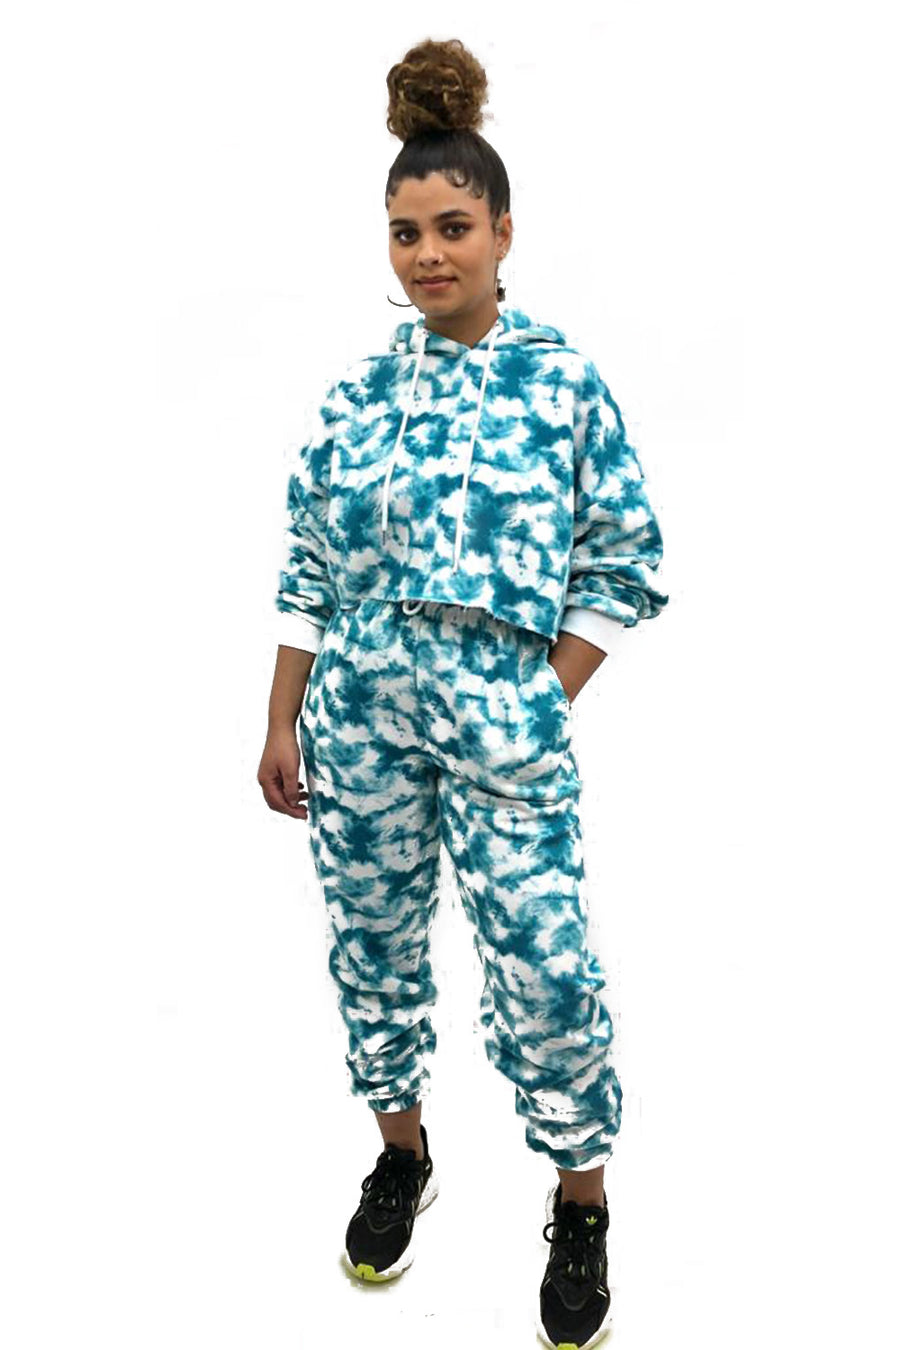 Ocean Blue Tie Dye Hooded Jersey Loungwear Suit - Nova